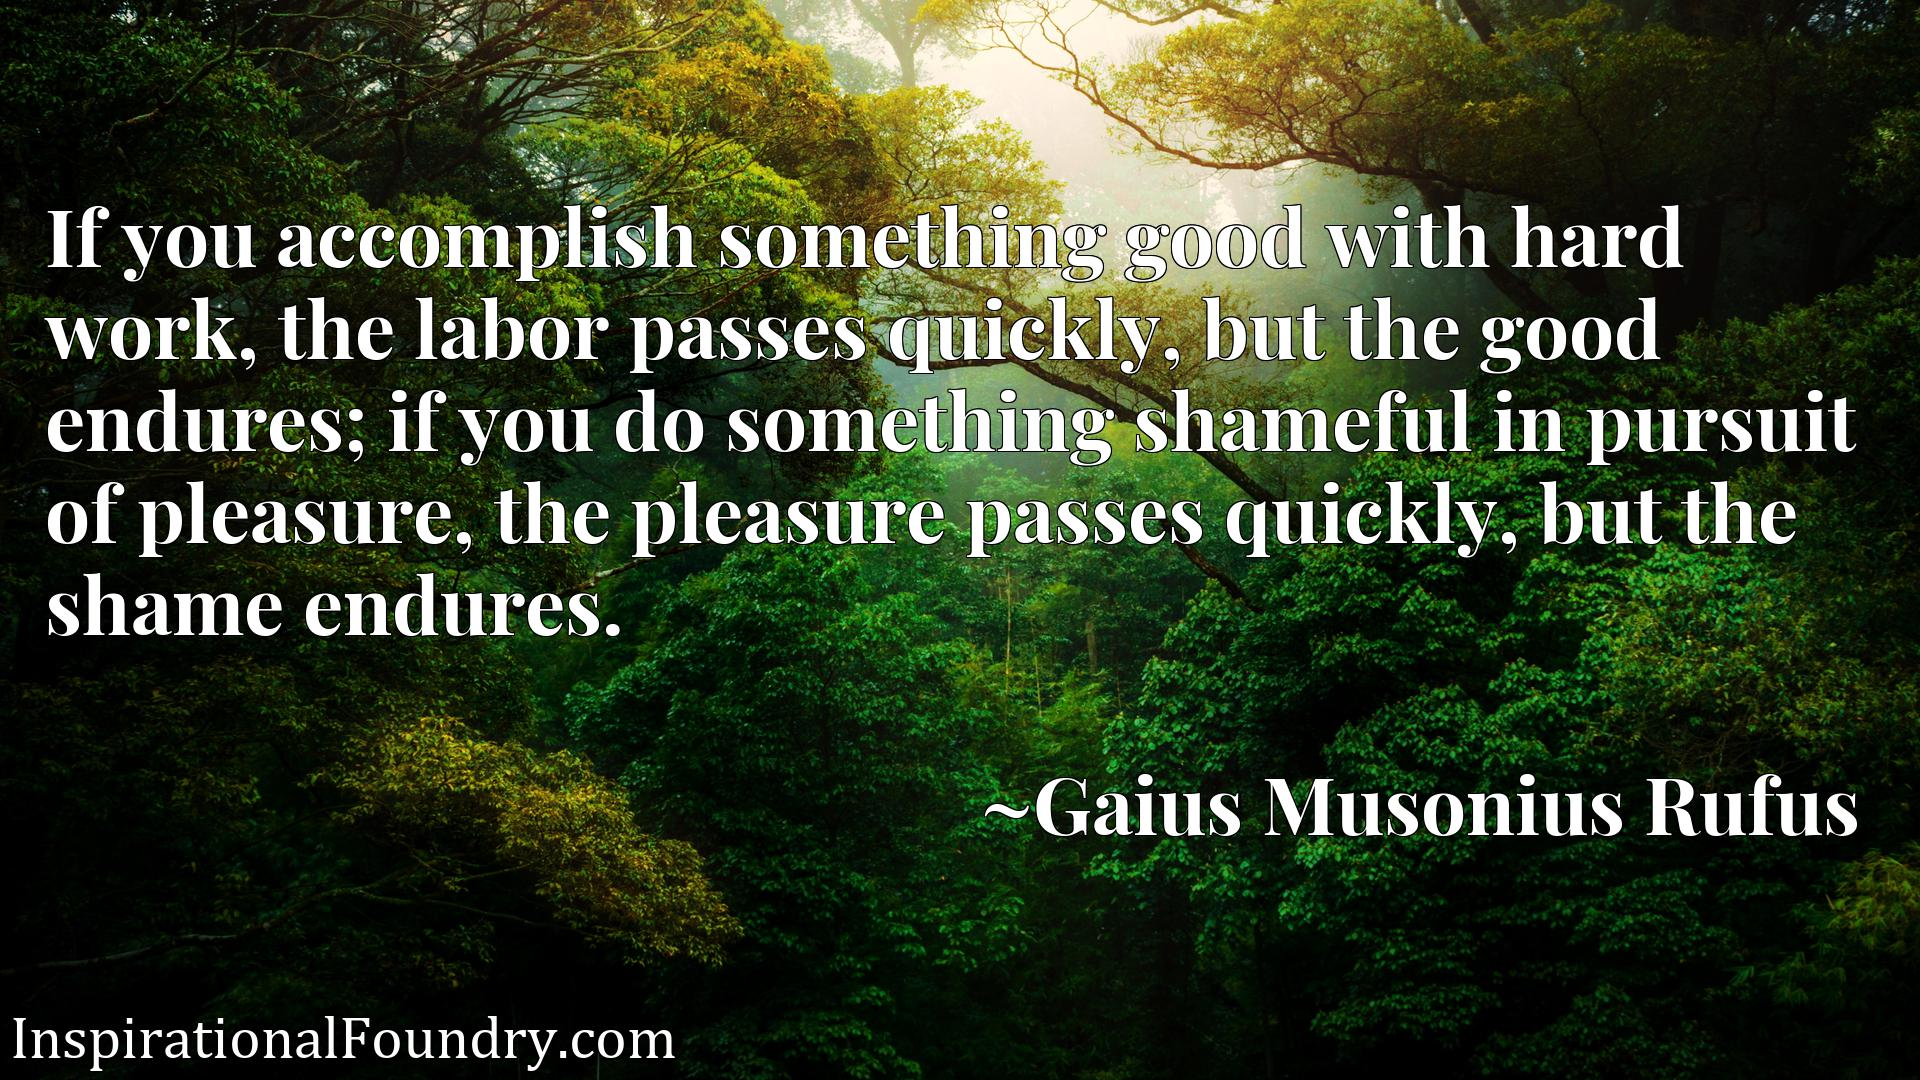 If you accomplish something good with hard work, the labor passes quickly, but the good endures; if you do something shameful in pursuit of pleasure, the pleasure passes quickly, but the shame endures.